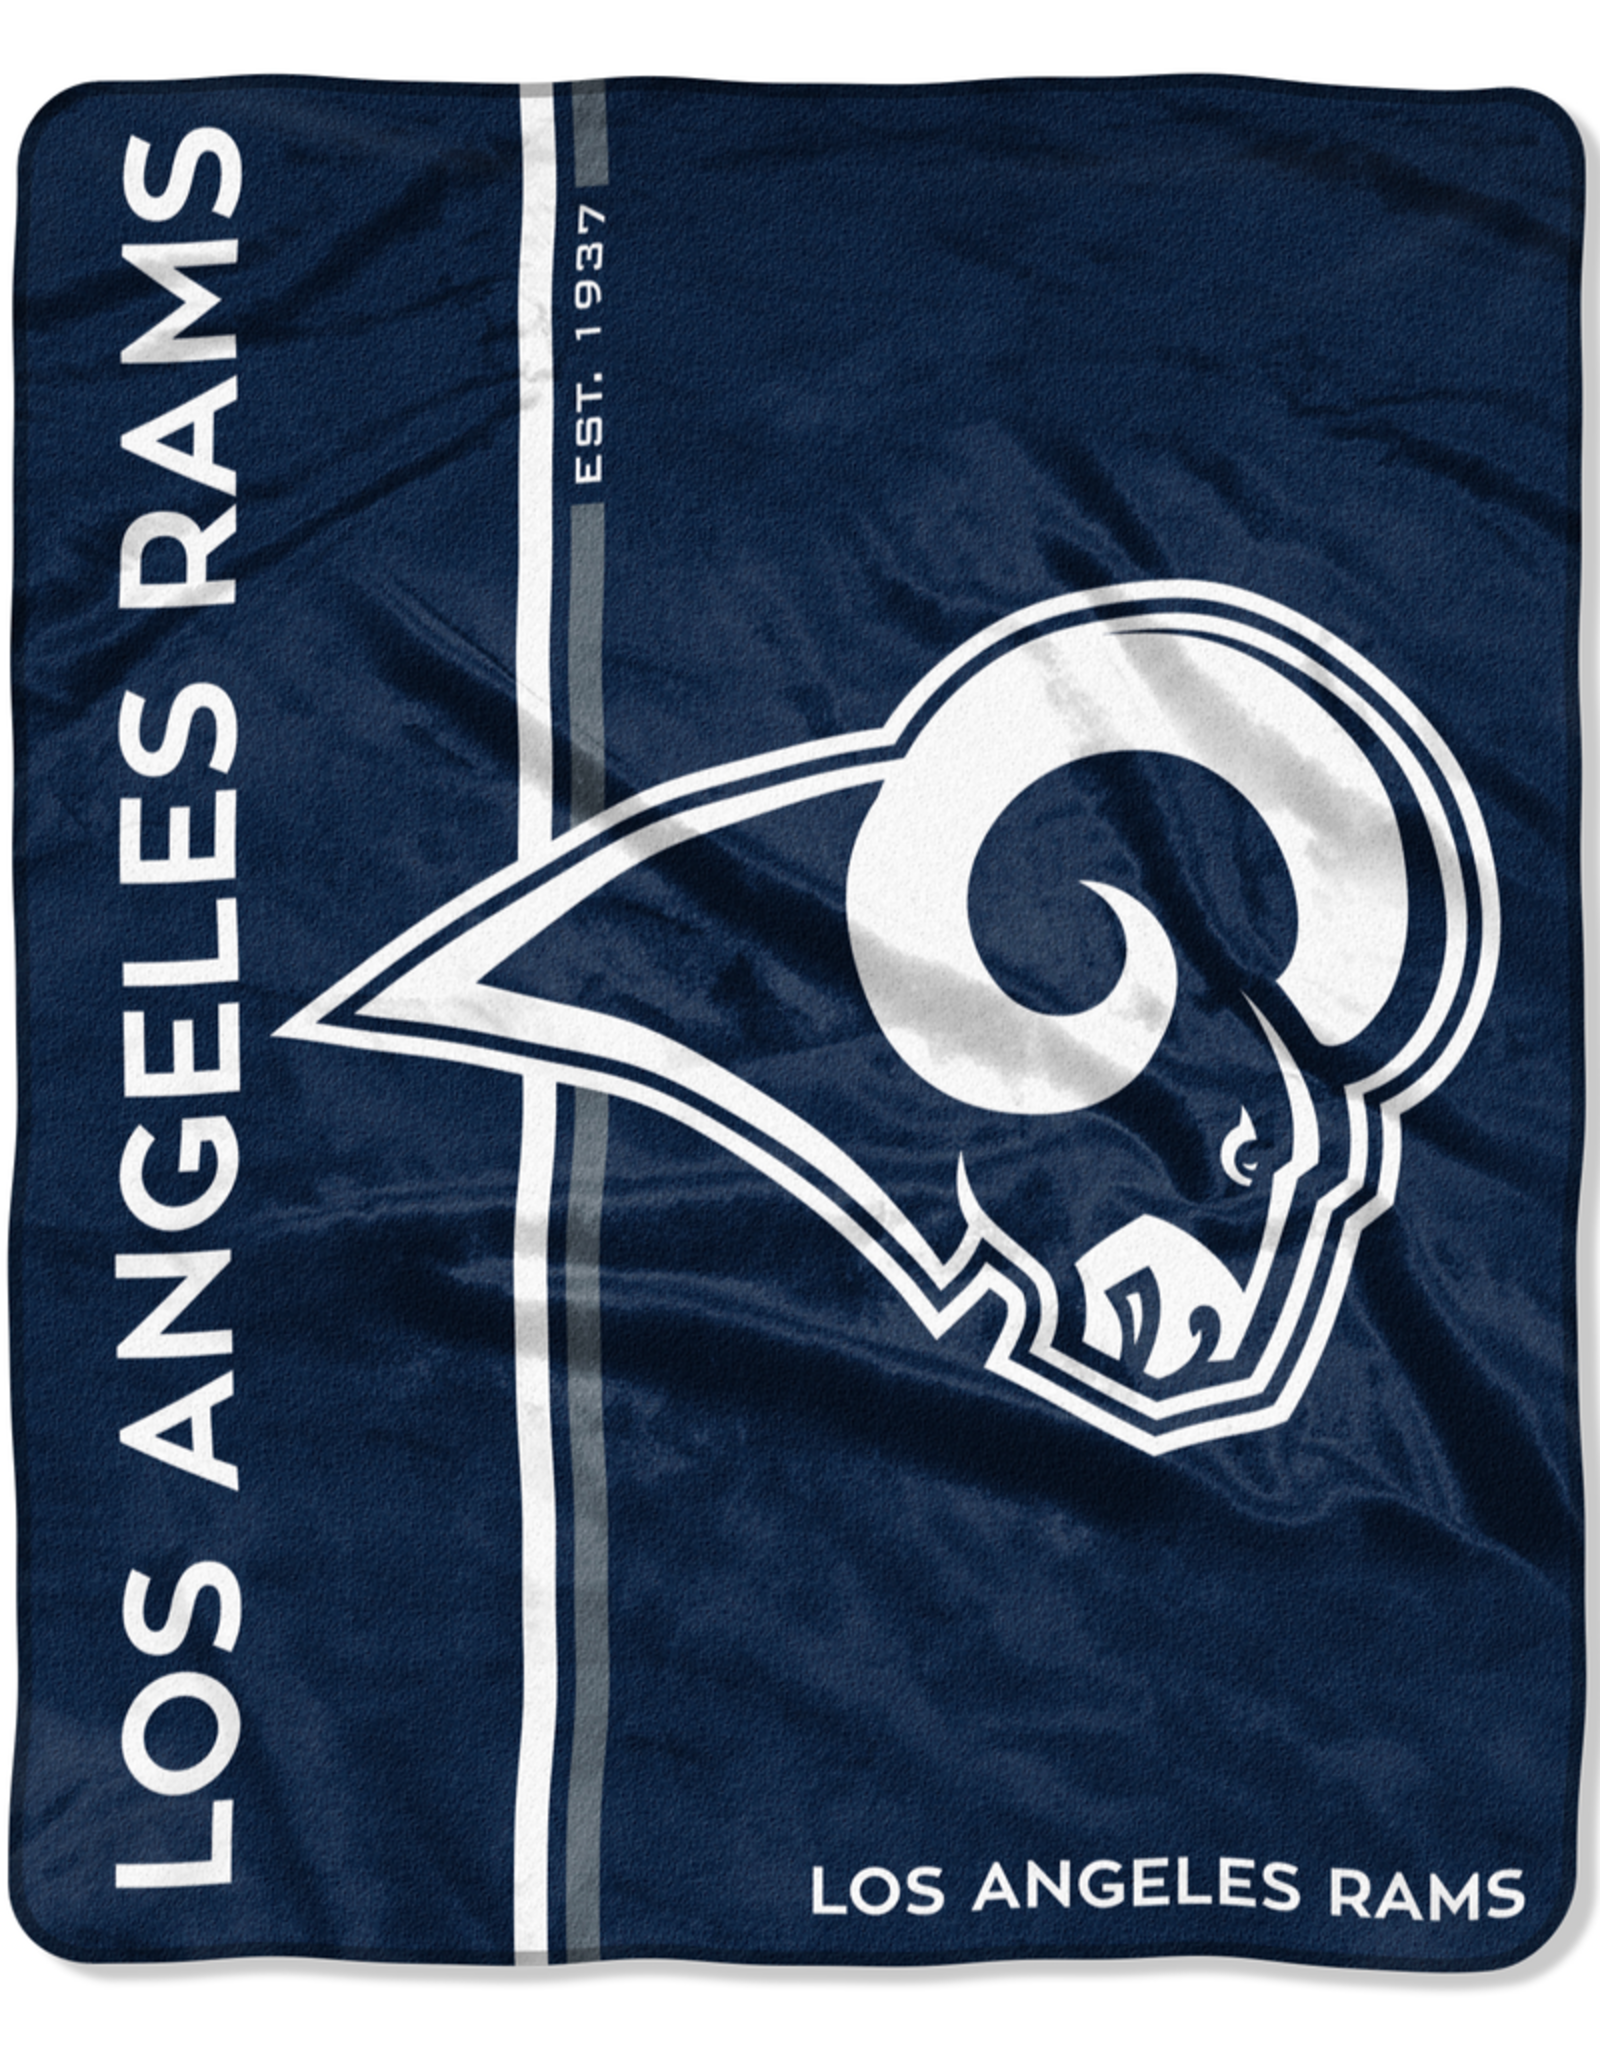 NORTHWEST Los Angeles Rams Restructure Royal Plush Raschel Throw